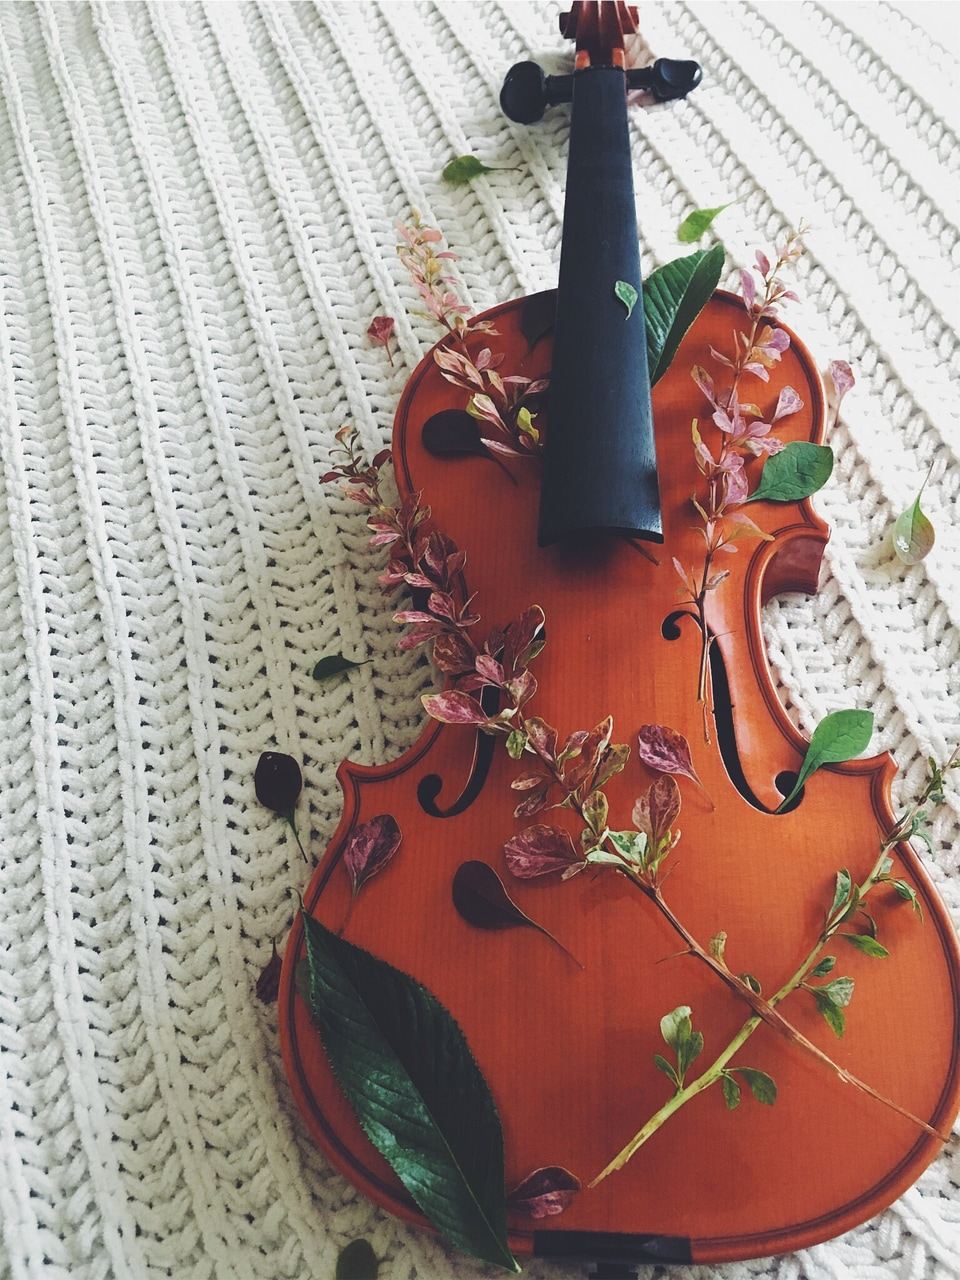 music, violin and orchestra